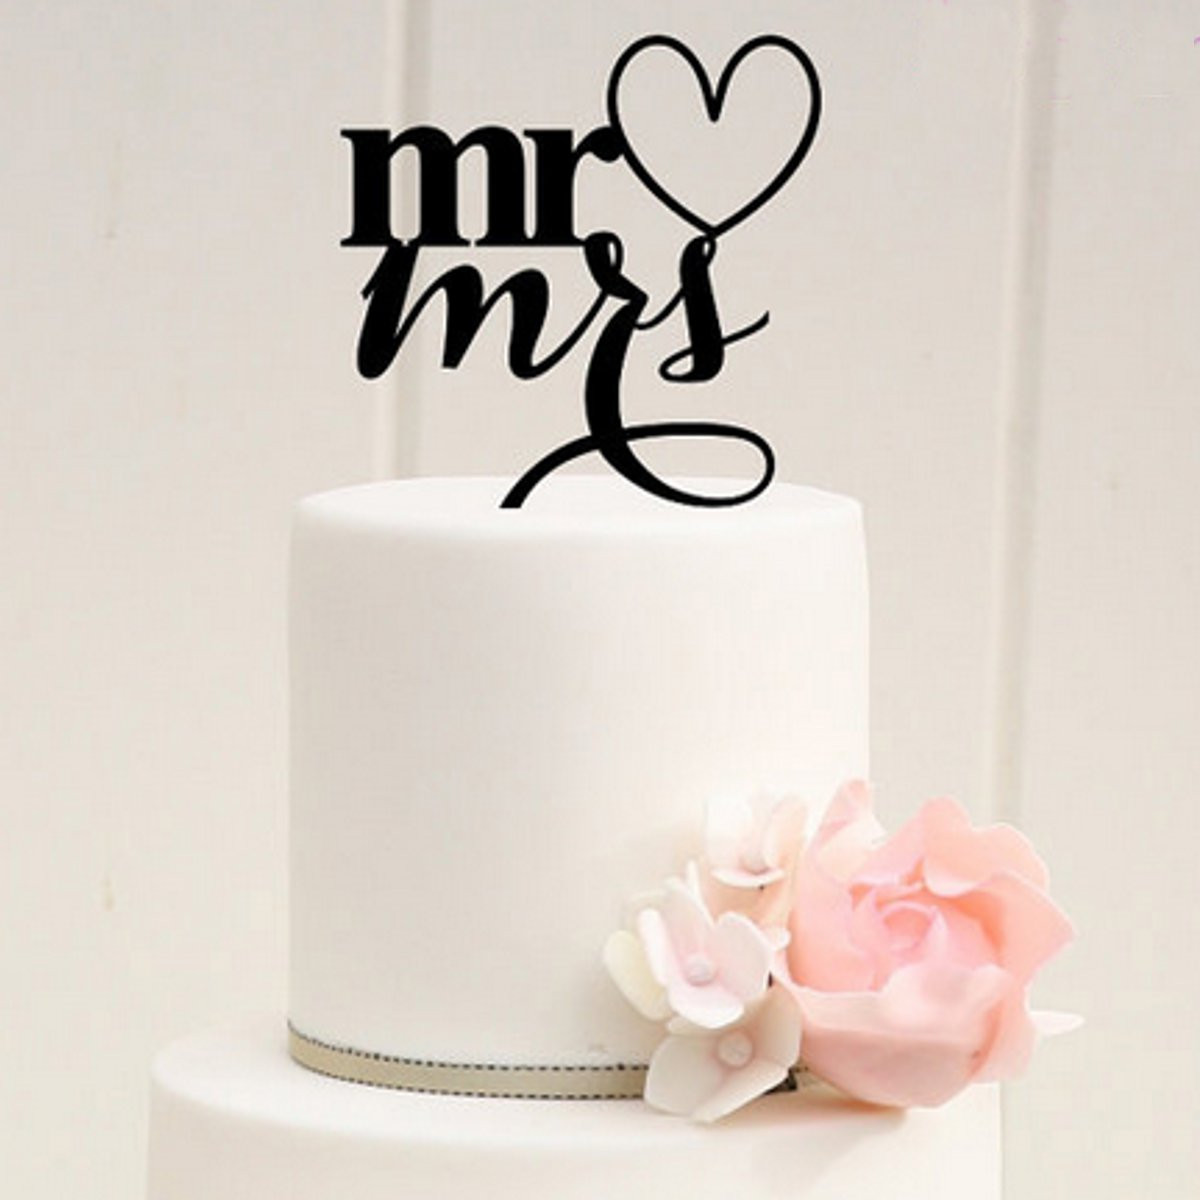 wedding cake topper mr and mrs cake topper mr and mrs groom anniversary wedding 8809